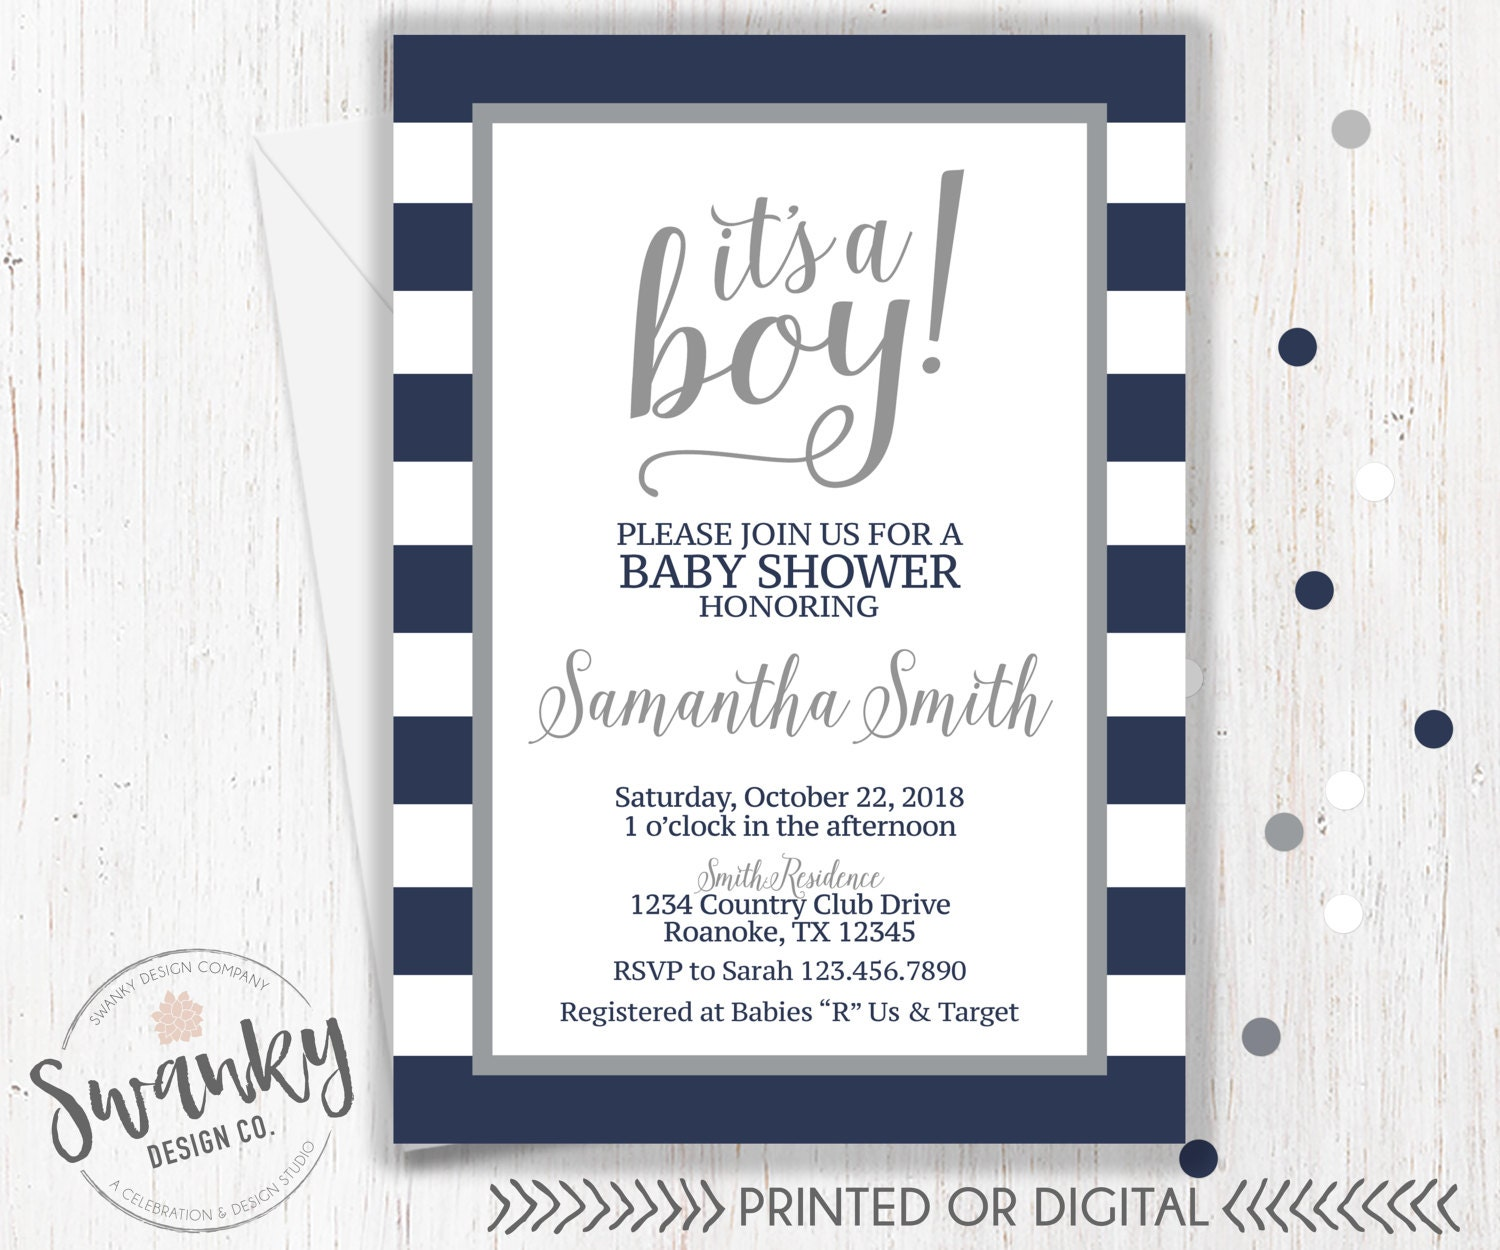 themes boy bulk shower a city as with conjunction invitation plus size invitations cheap baseball large invites wording baby of party for well in poems